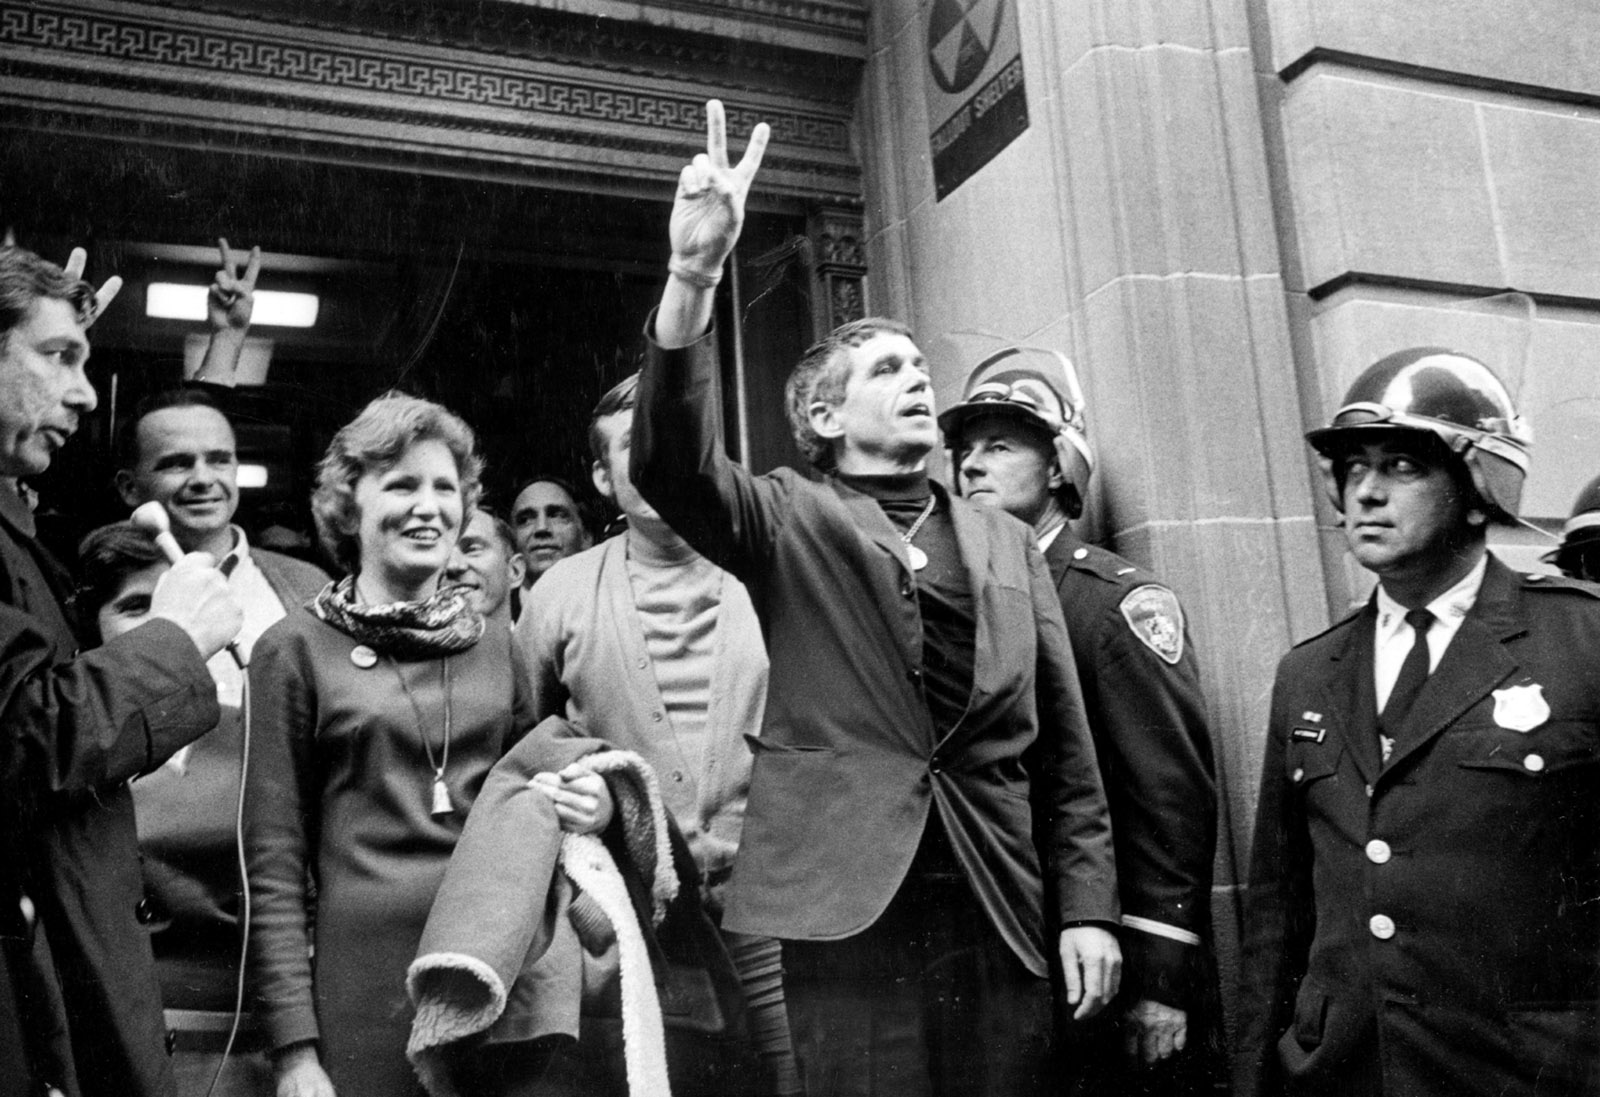 Catonsville Nine members Mary Moylan and Daniel Berrigan leaving the Baltimore federal courthouse at the time of their trial for burning draft files to protest the Vietnam War, October 1968